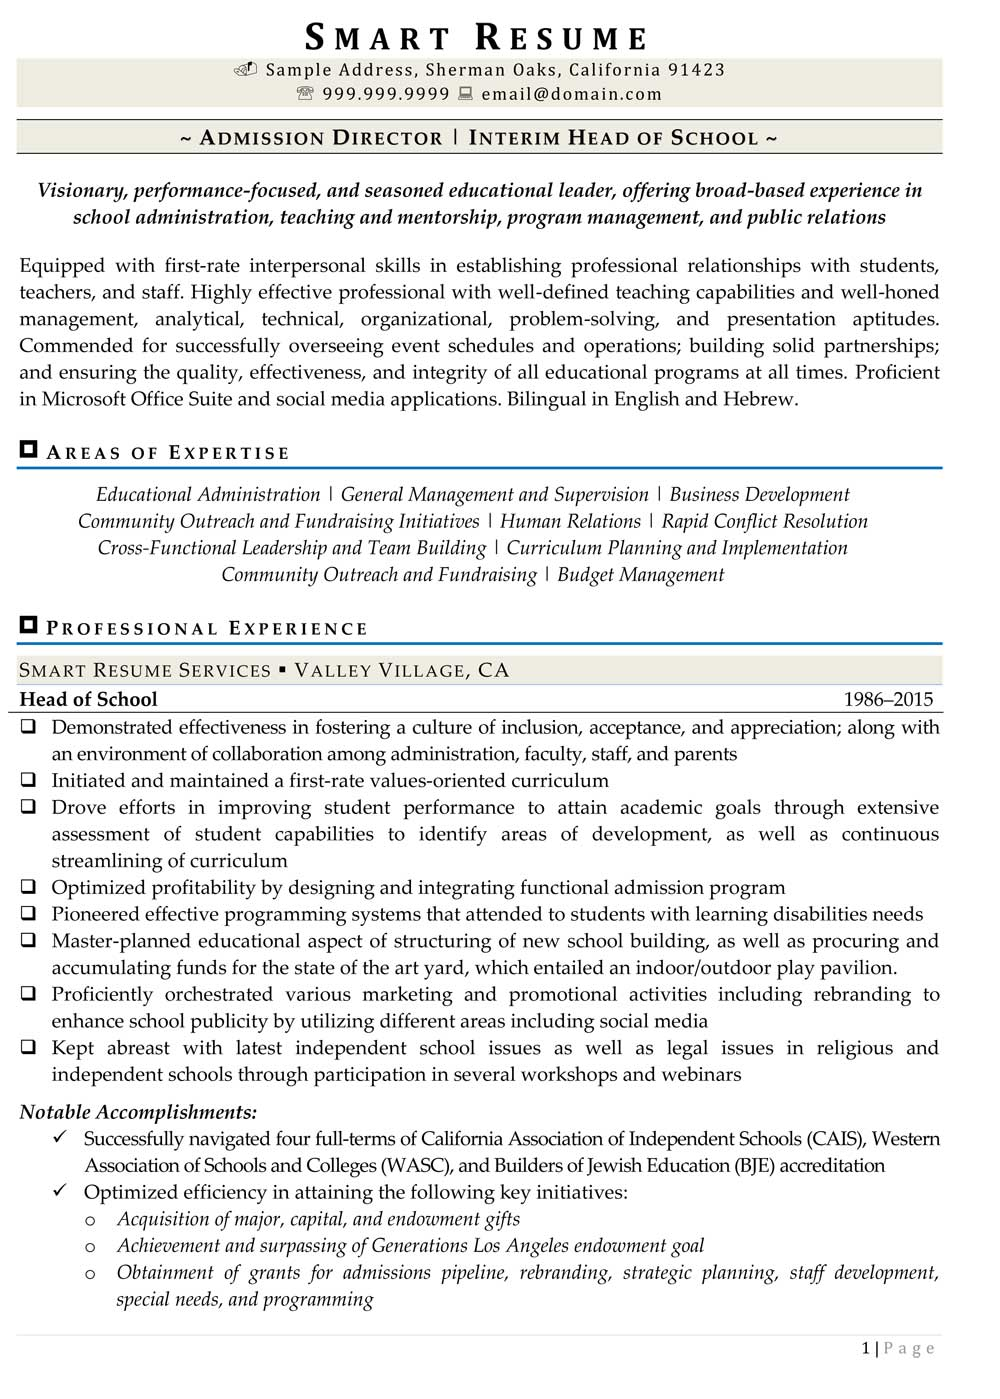 Resume for director of admissions